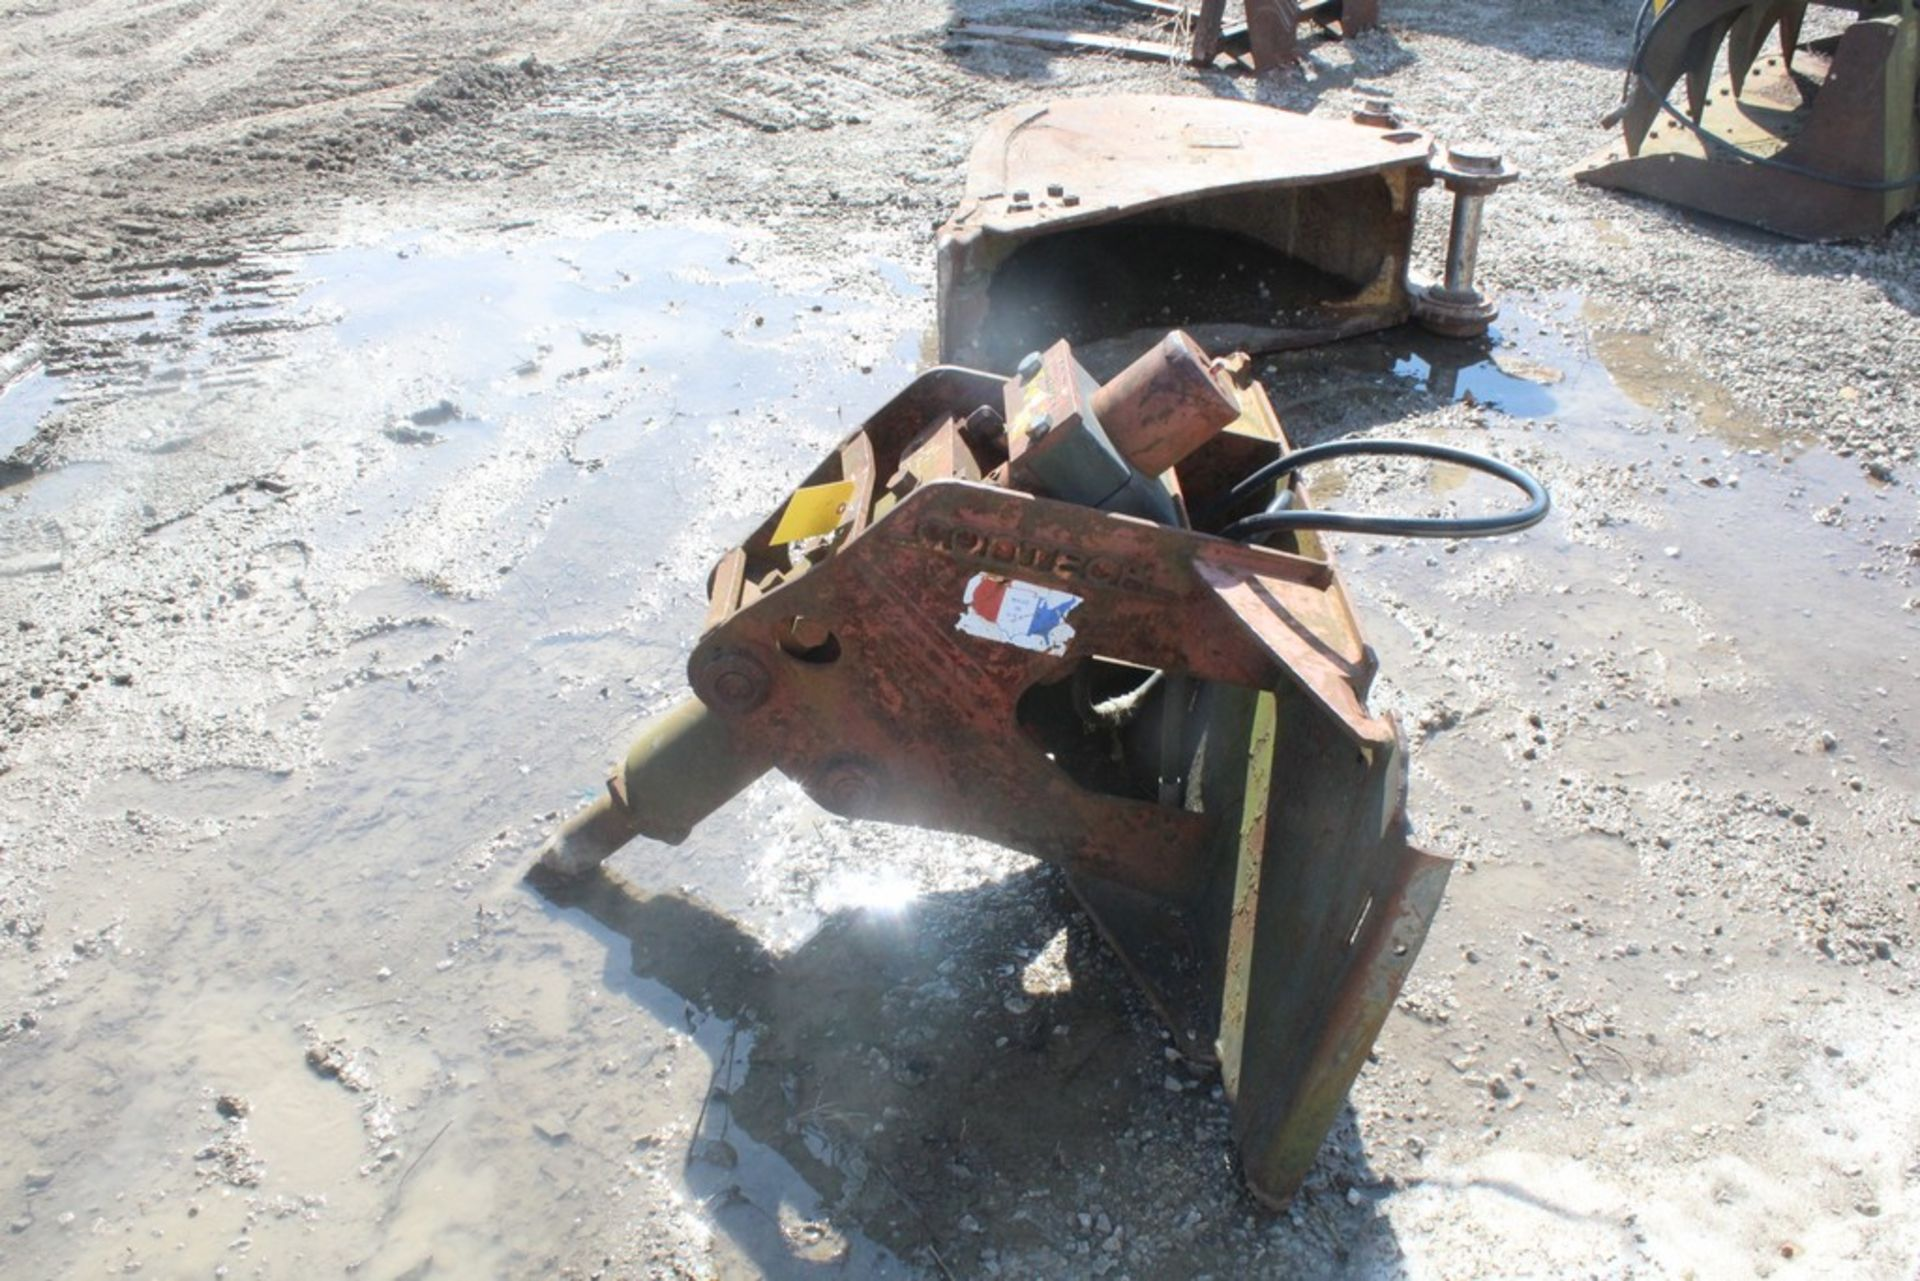 CONTECH H-220 HYDRAULIC BREAKER ATTACHMENT S/N: 86010, BIT, TO FIT SKID STEER LOADER - Image 2 of 4